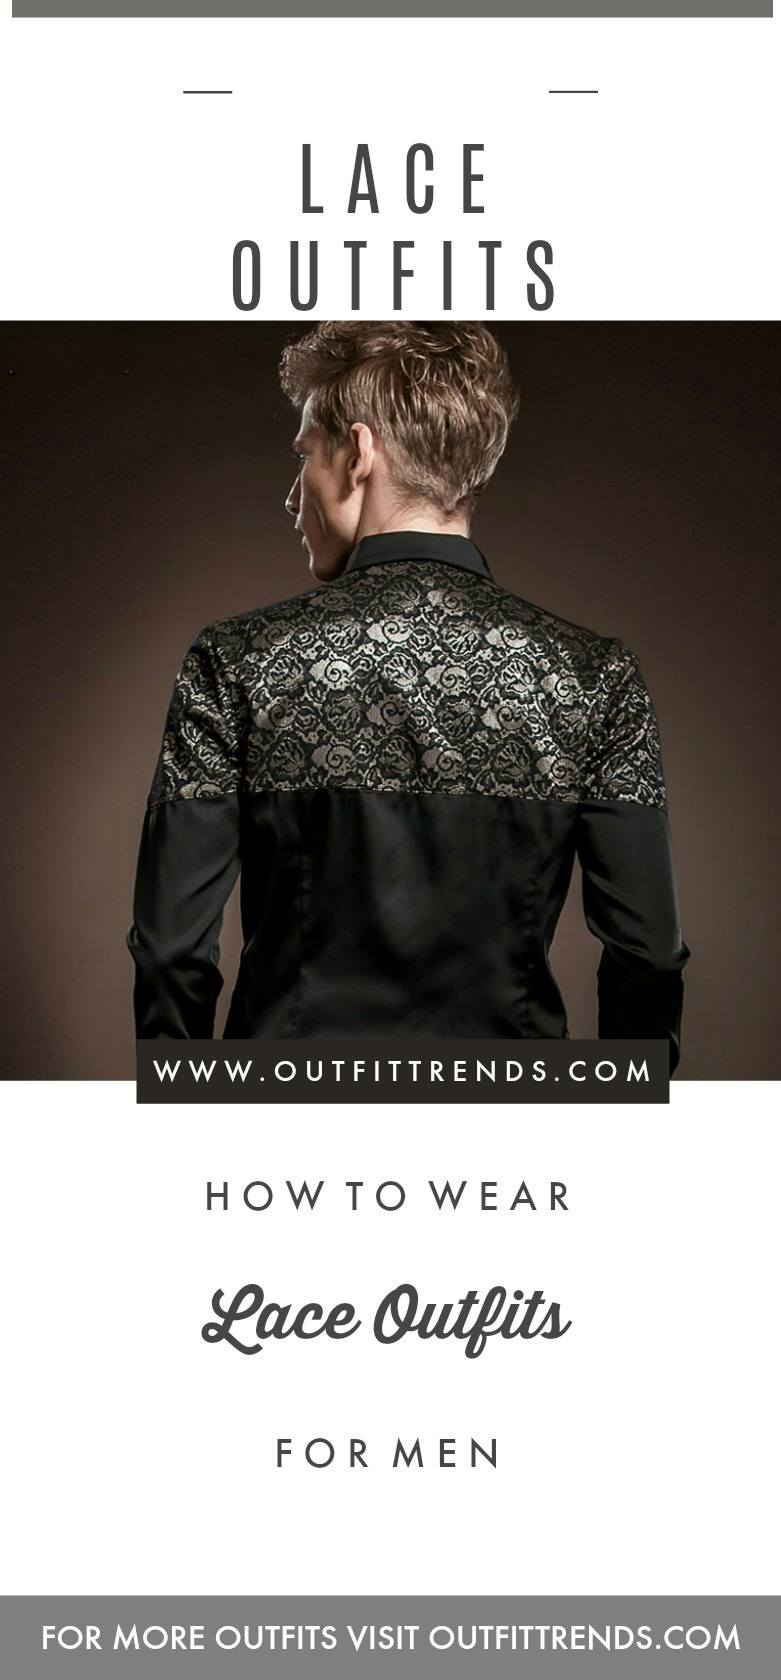 Recipe-for-Greatness Lace Outfits for Men- 27 Best Ways to Wear Guys Lace Outfits